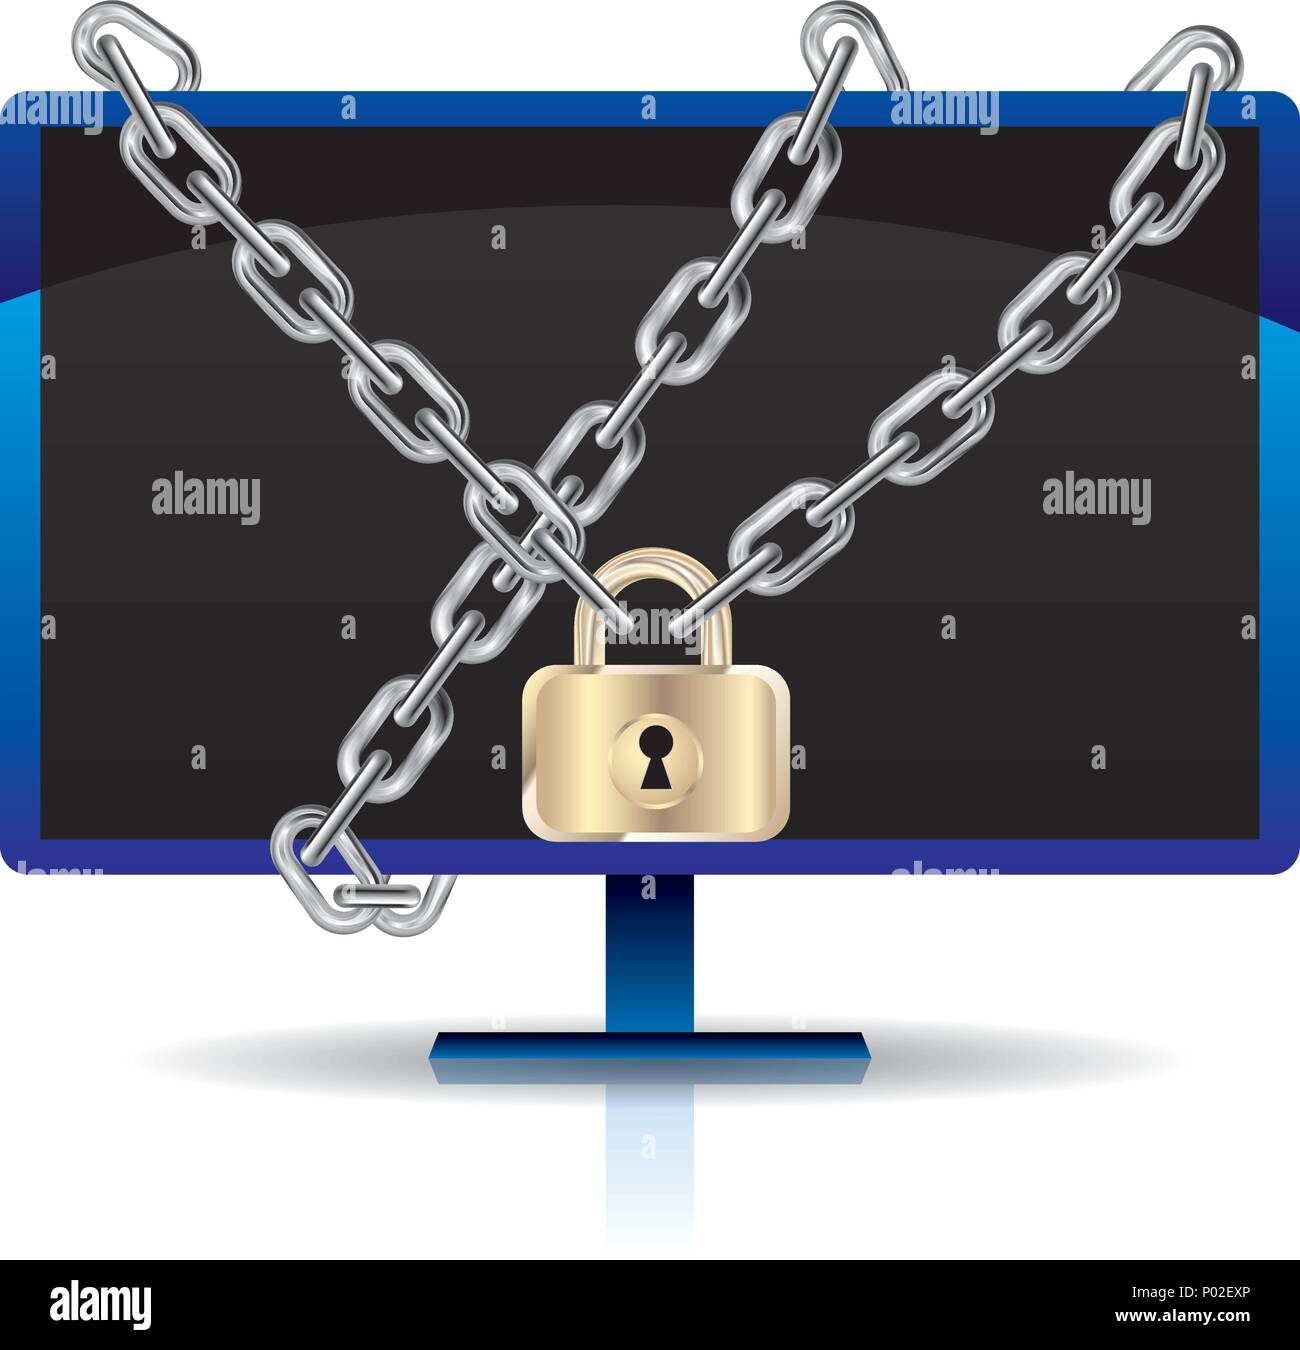 Computer monitor locked by a chain.Isolated on white background. Stock Vector